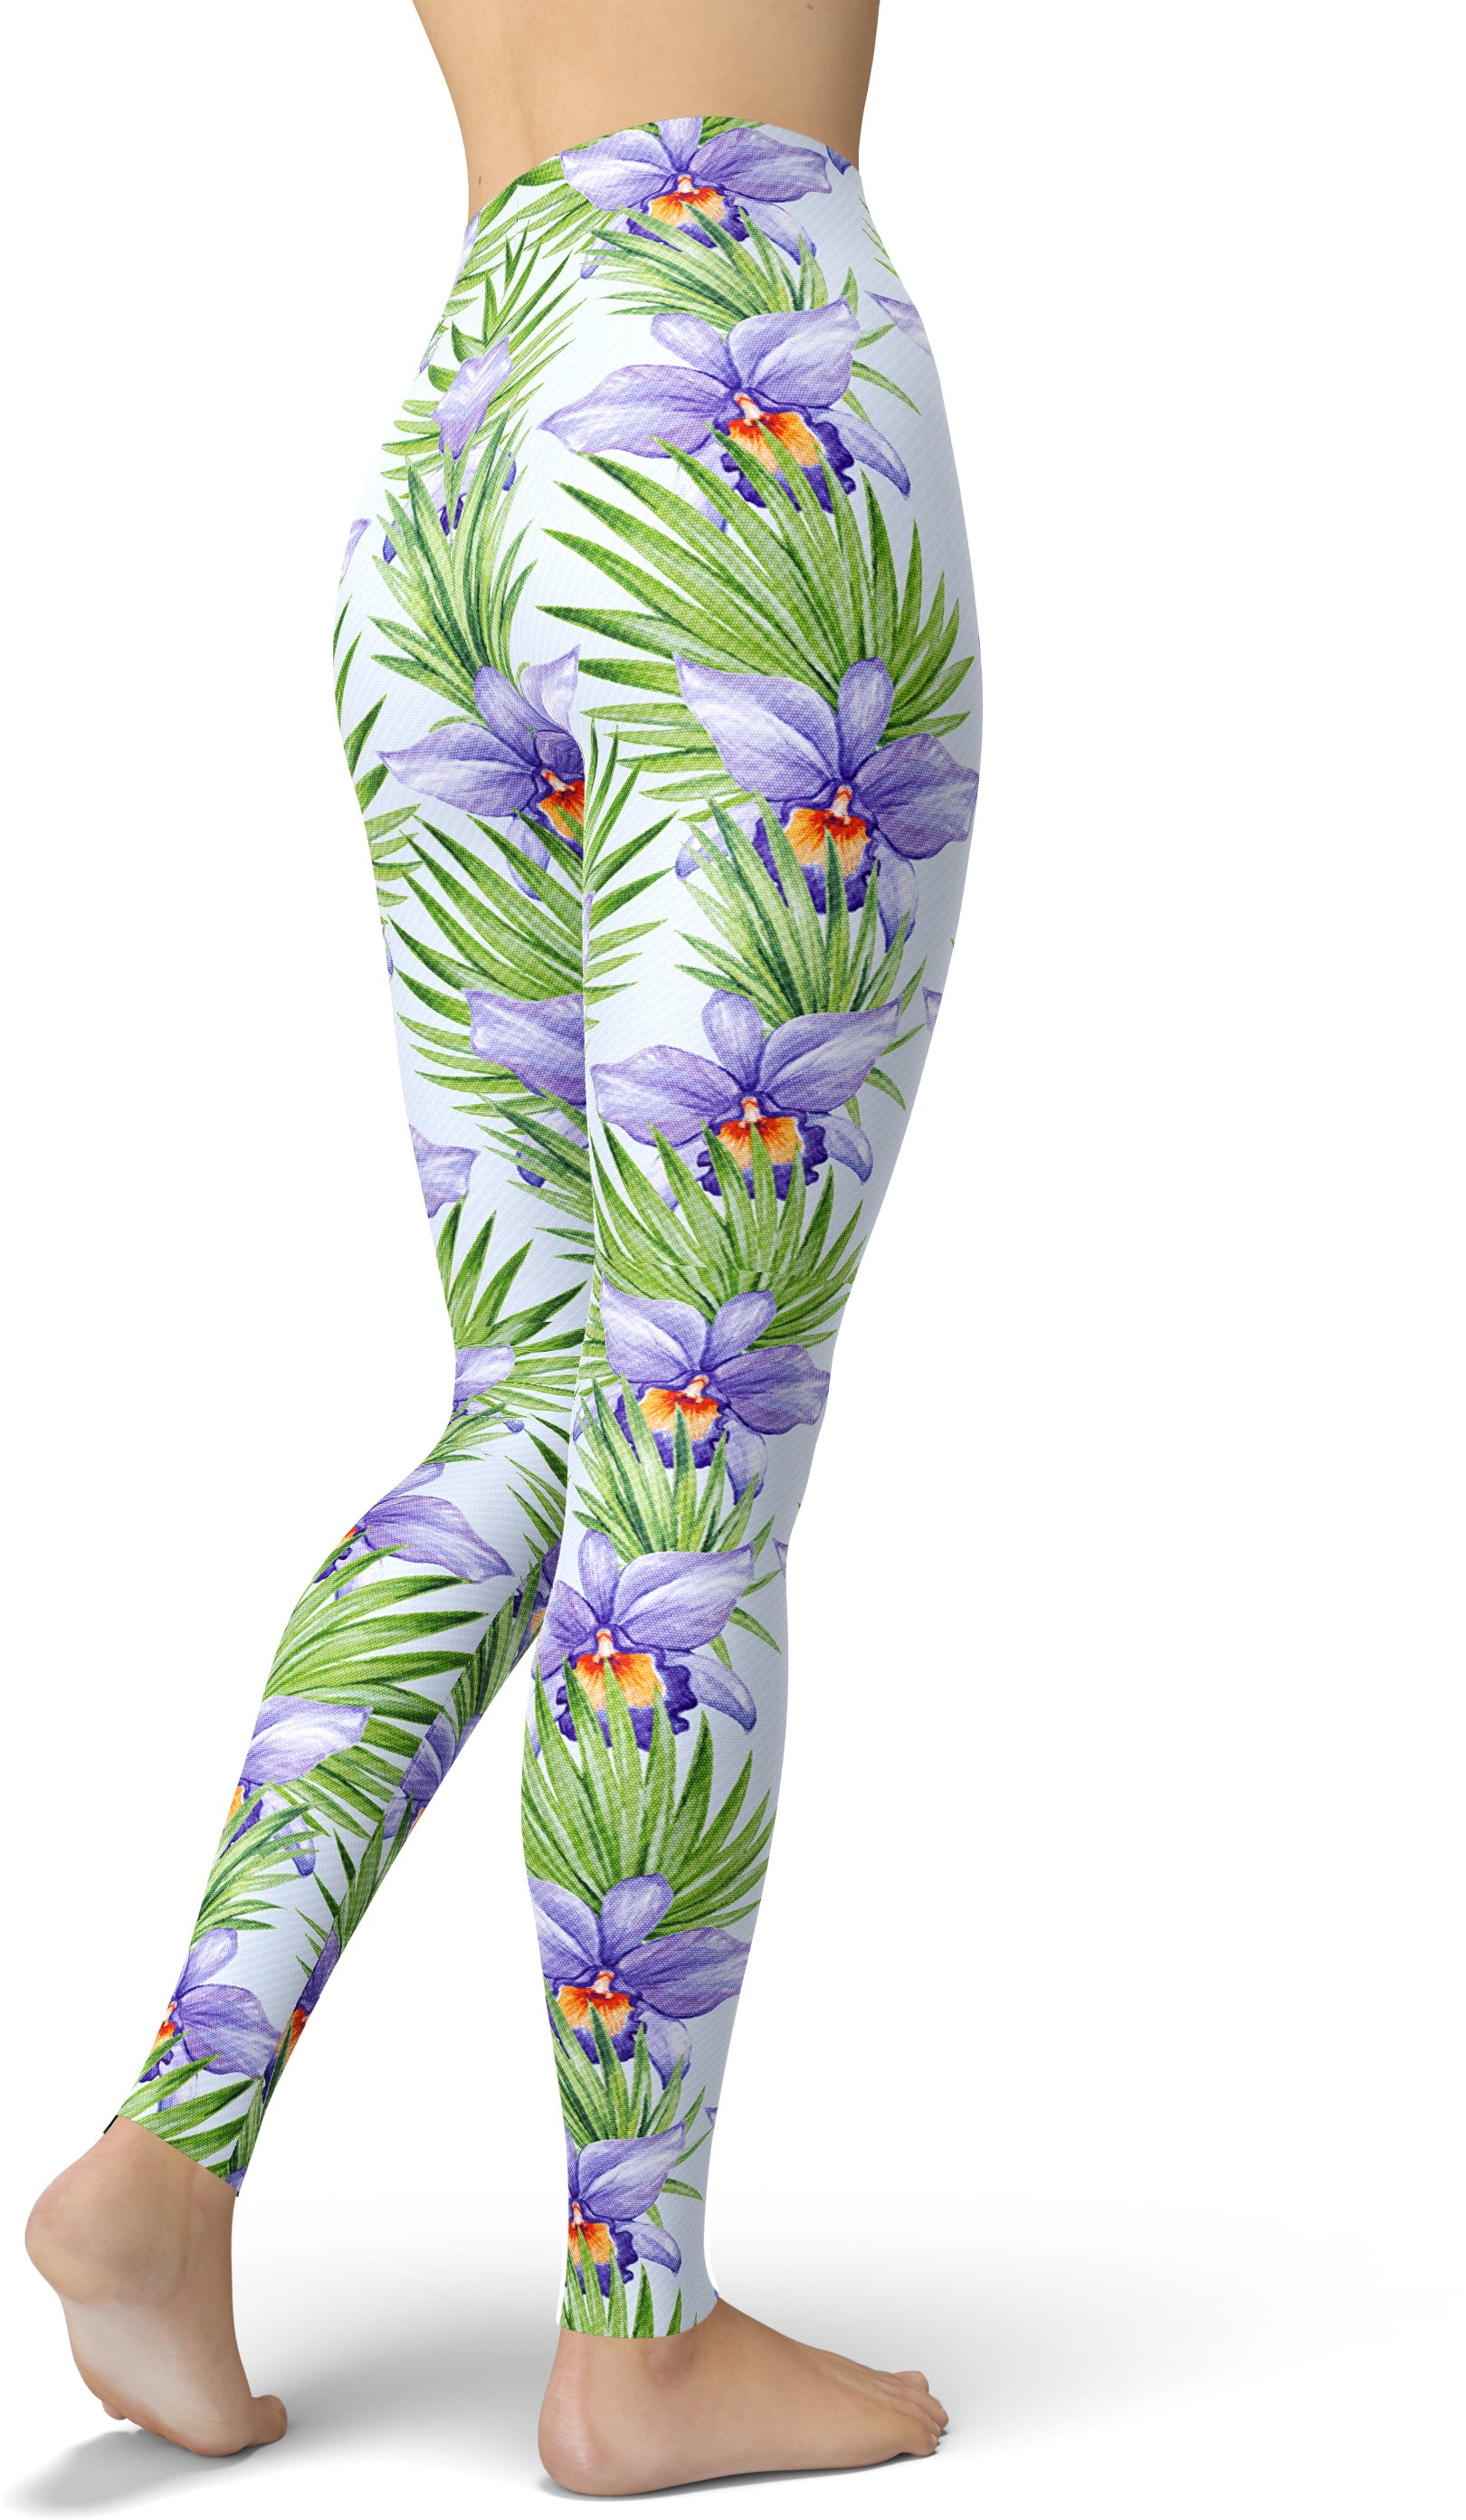 Lavender & Leaves Printed Leggings